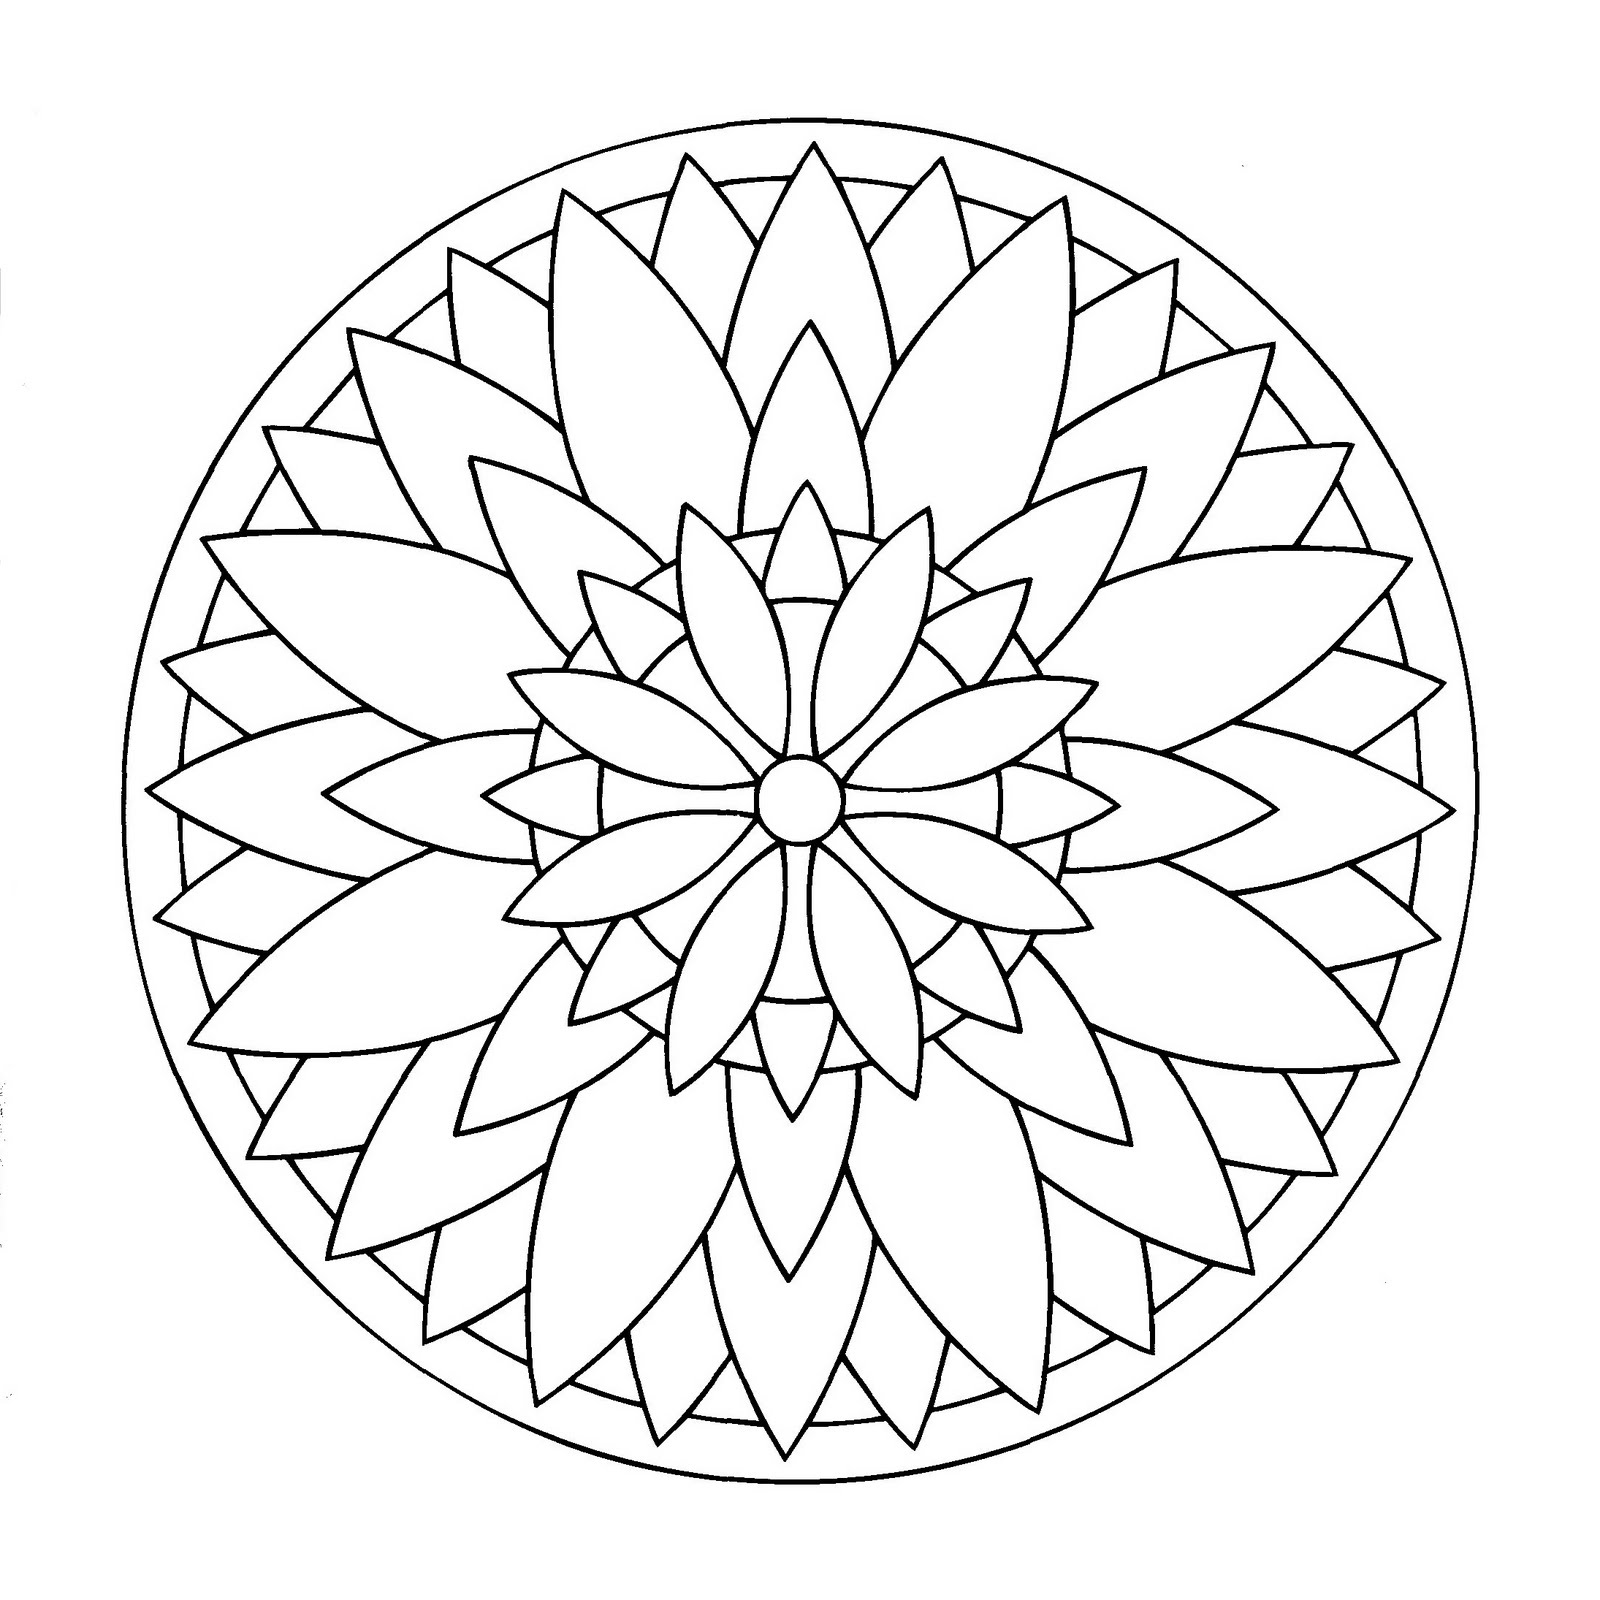 Tal M Colouring Pages Mandala Colorear